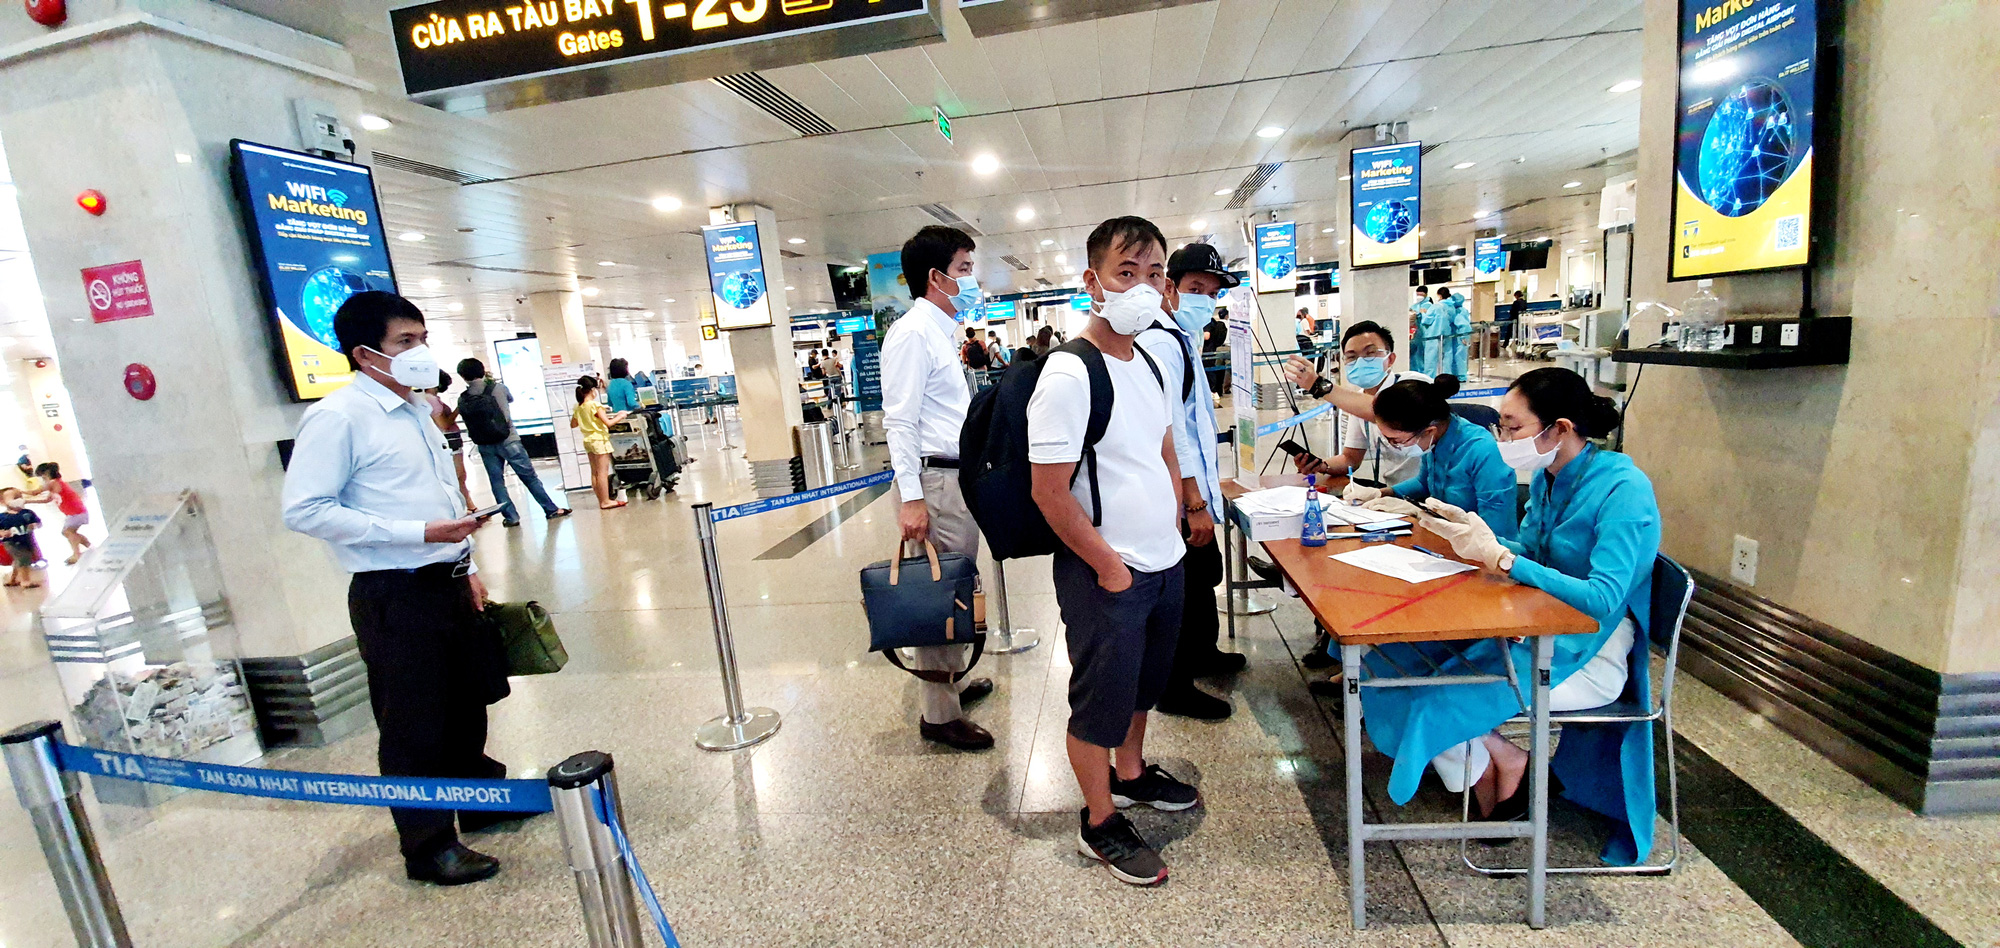 Passengers perform health declaration at a Vietnam Airlines desk at Tan Son Nhat International Airport in Ho Chi Minh City, July 1, 2021. Photo: C. Trung / Tuoi Tre